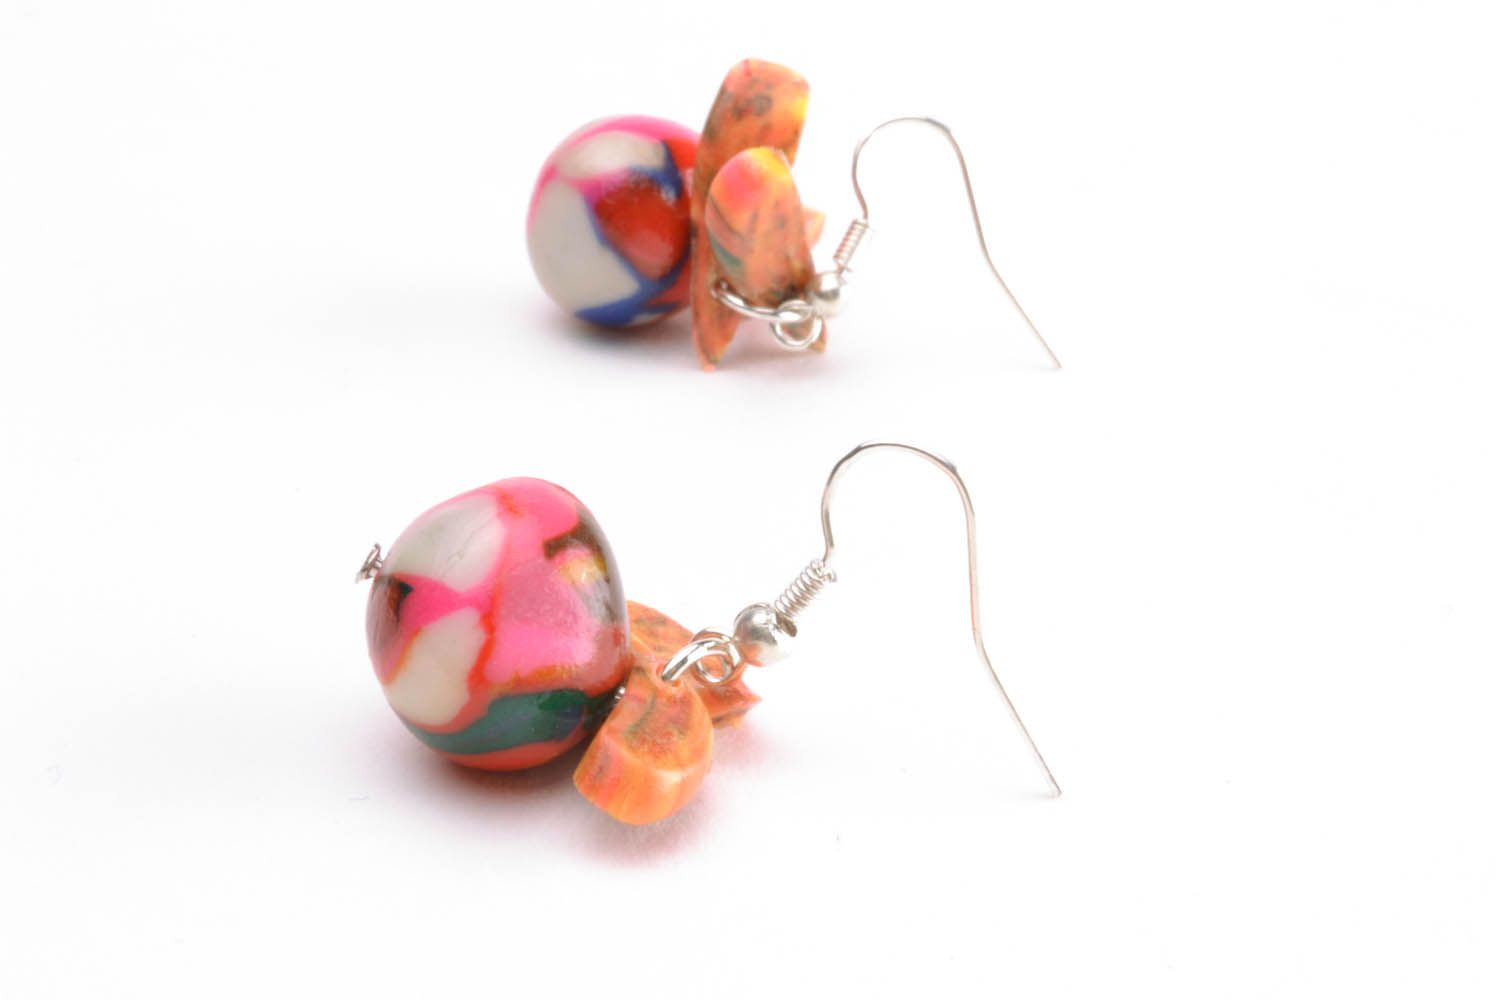 Colourful earrings with charms photo 2